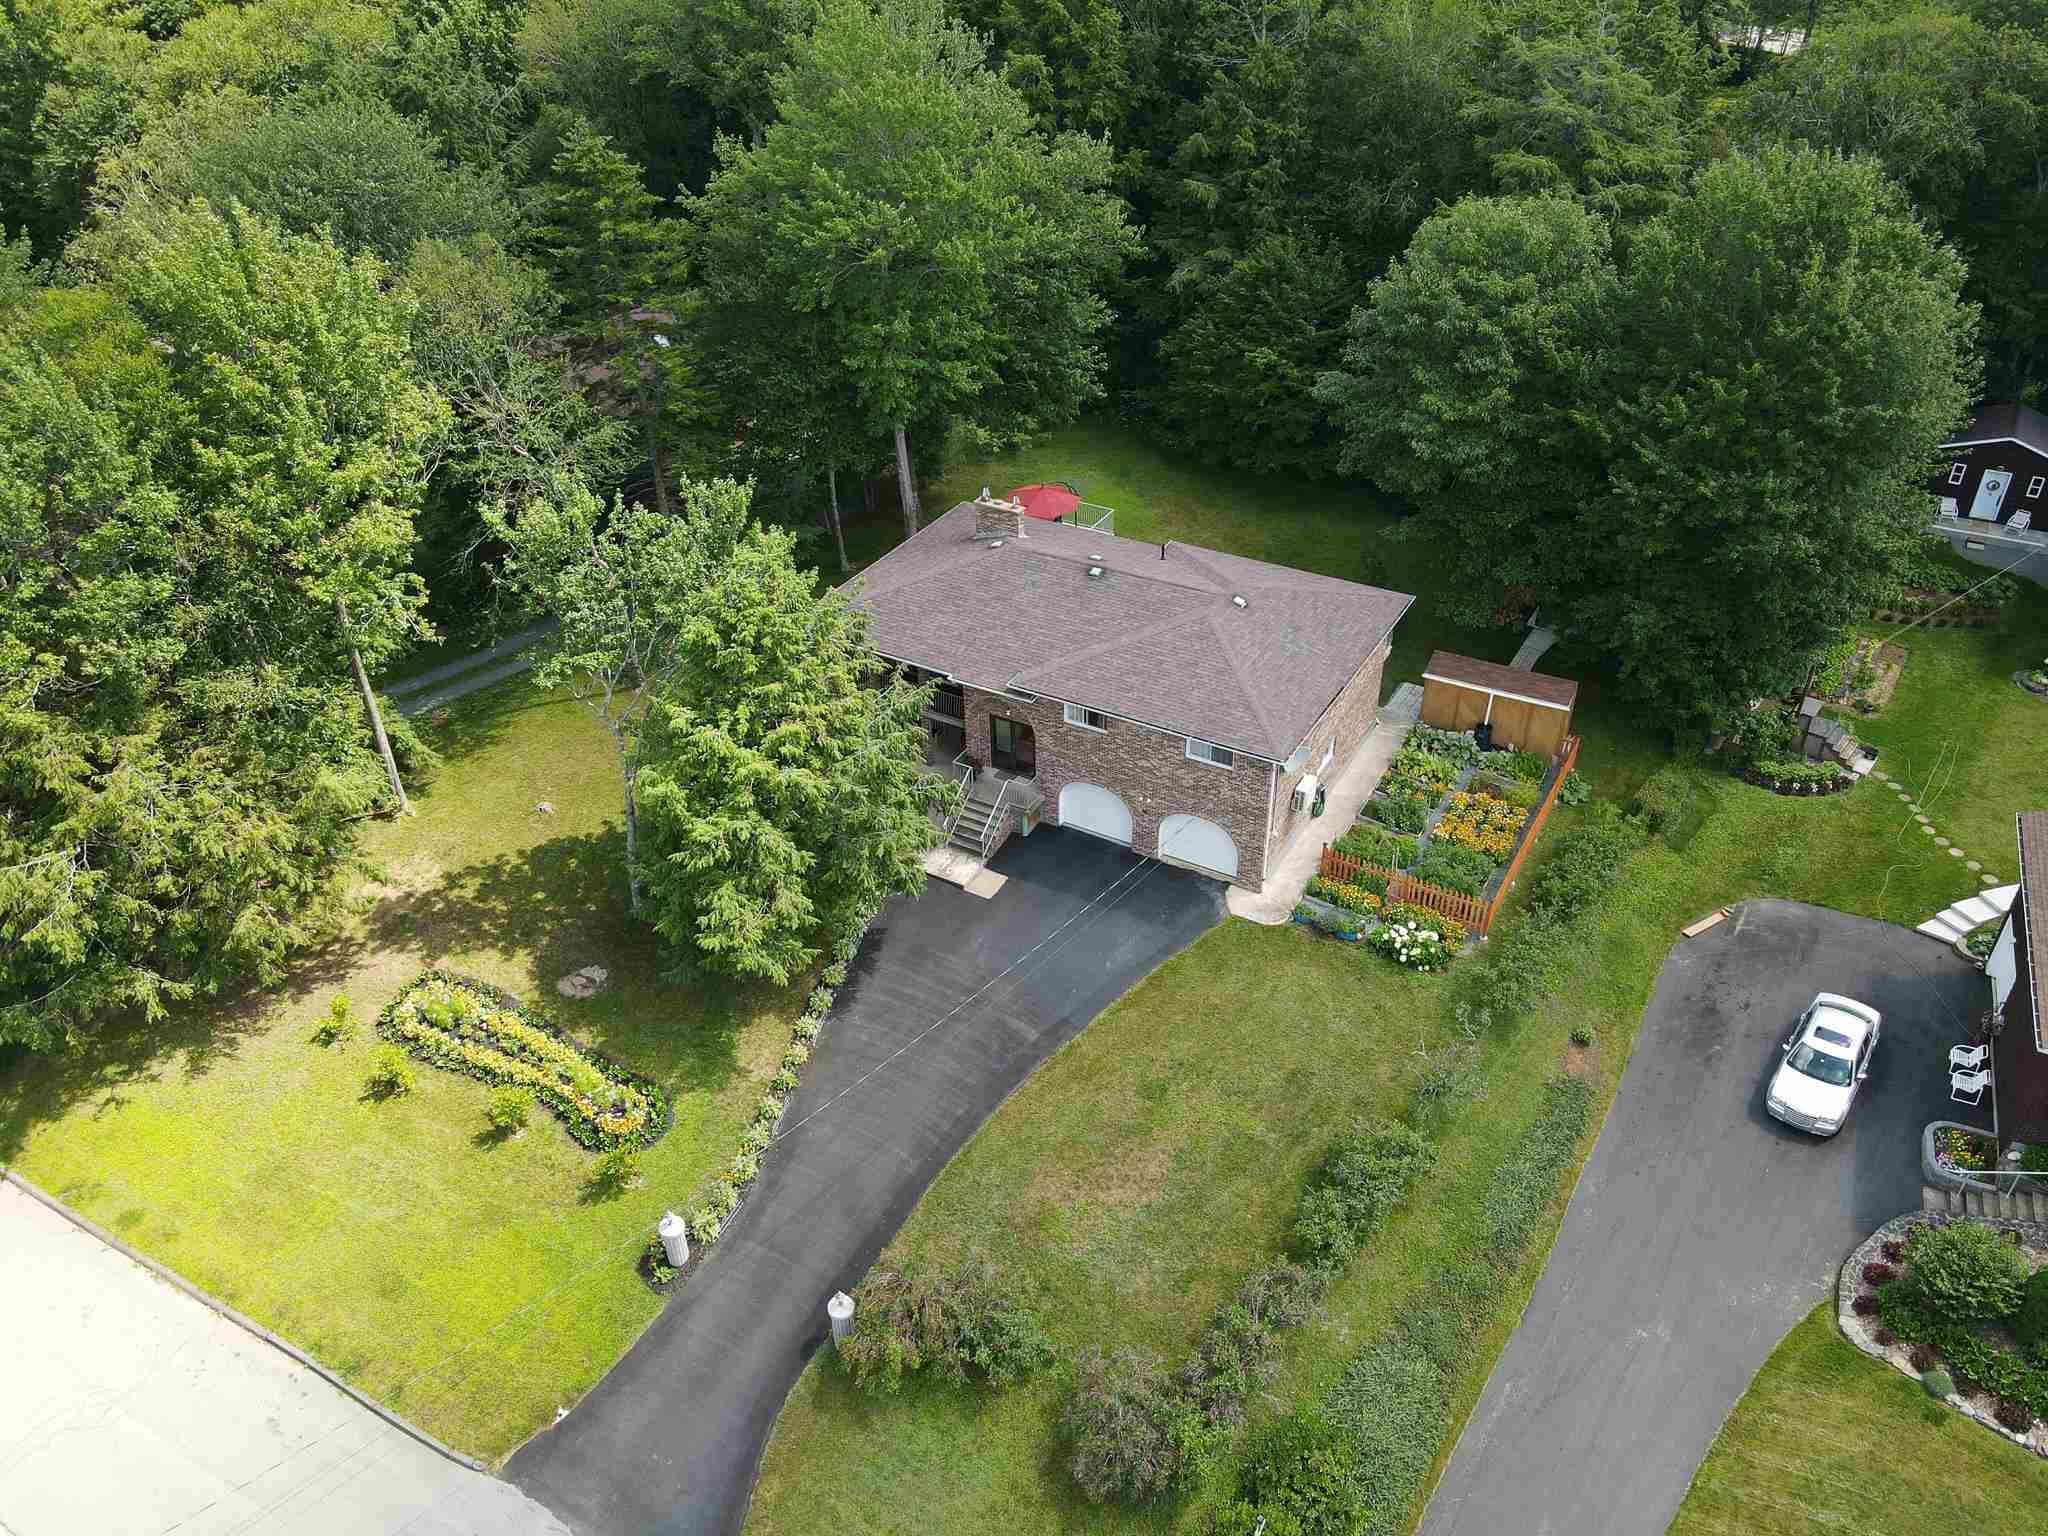 Main Photo: 96 Howe Avenue in Fall River: 30-Waverley, Fall River, Oakfield Residential for sale (Halifax-Dartmouth)  : MLS®# 202121965